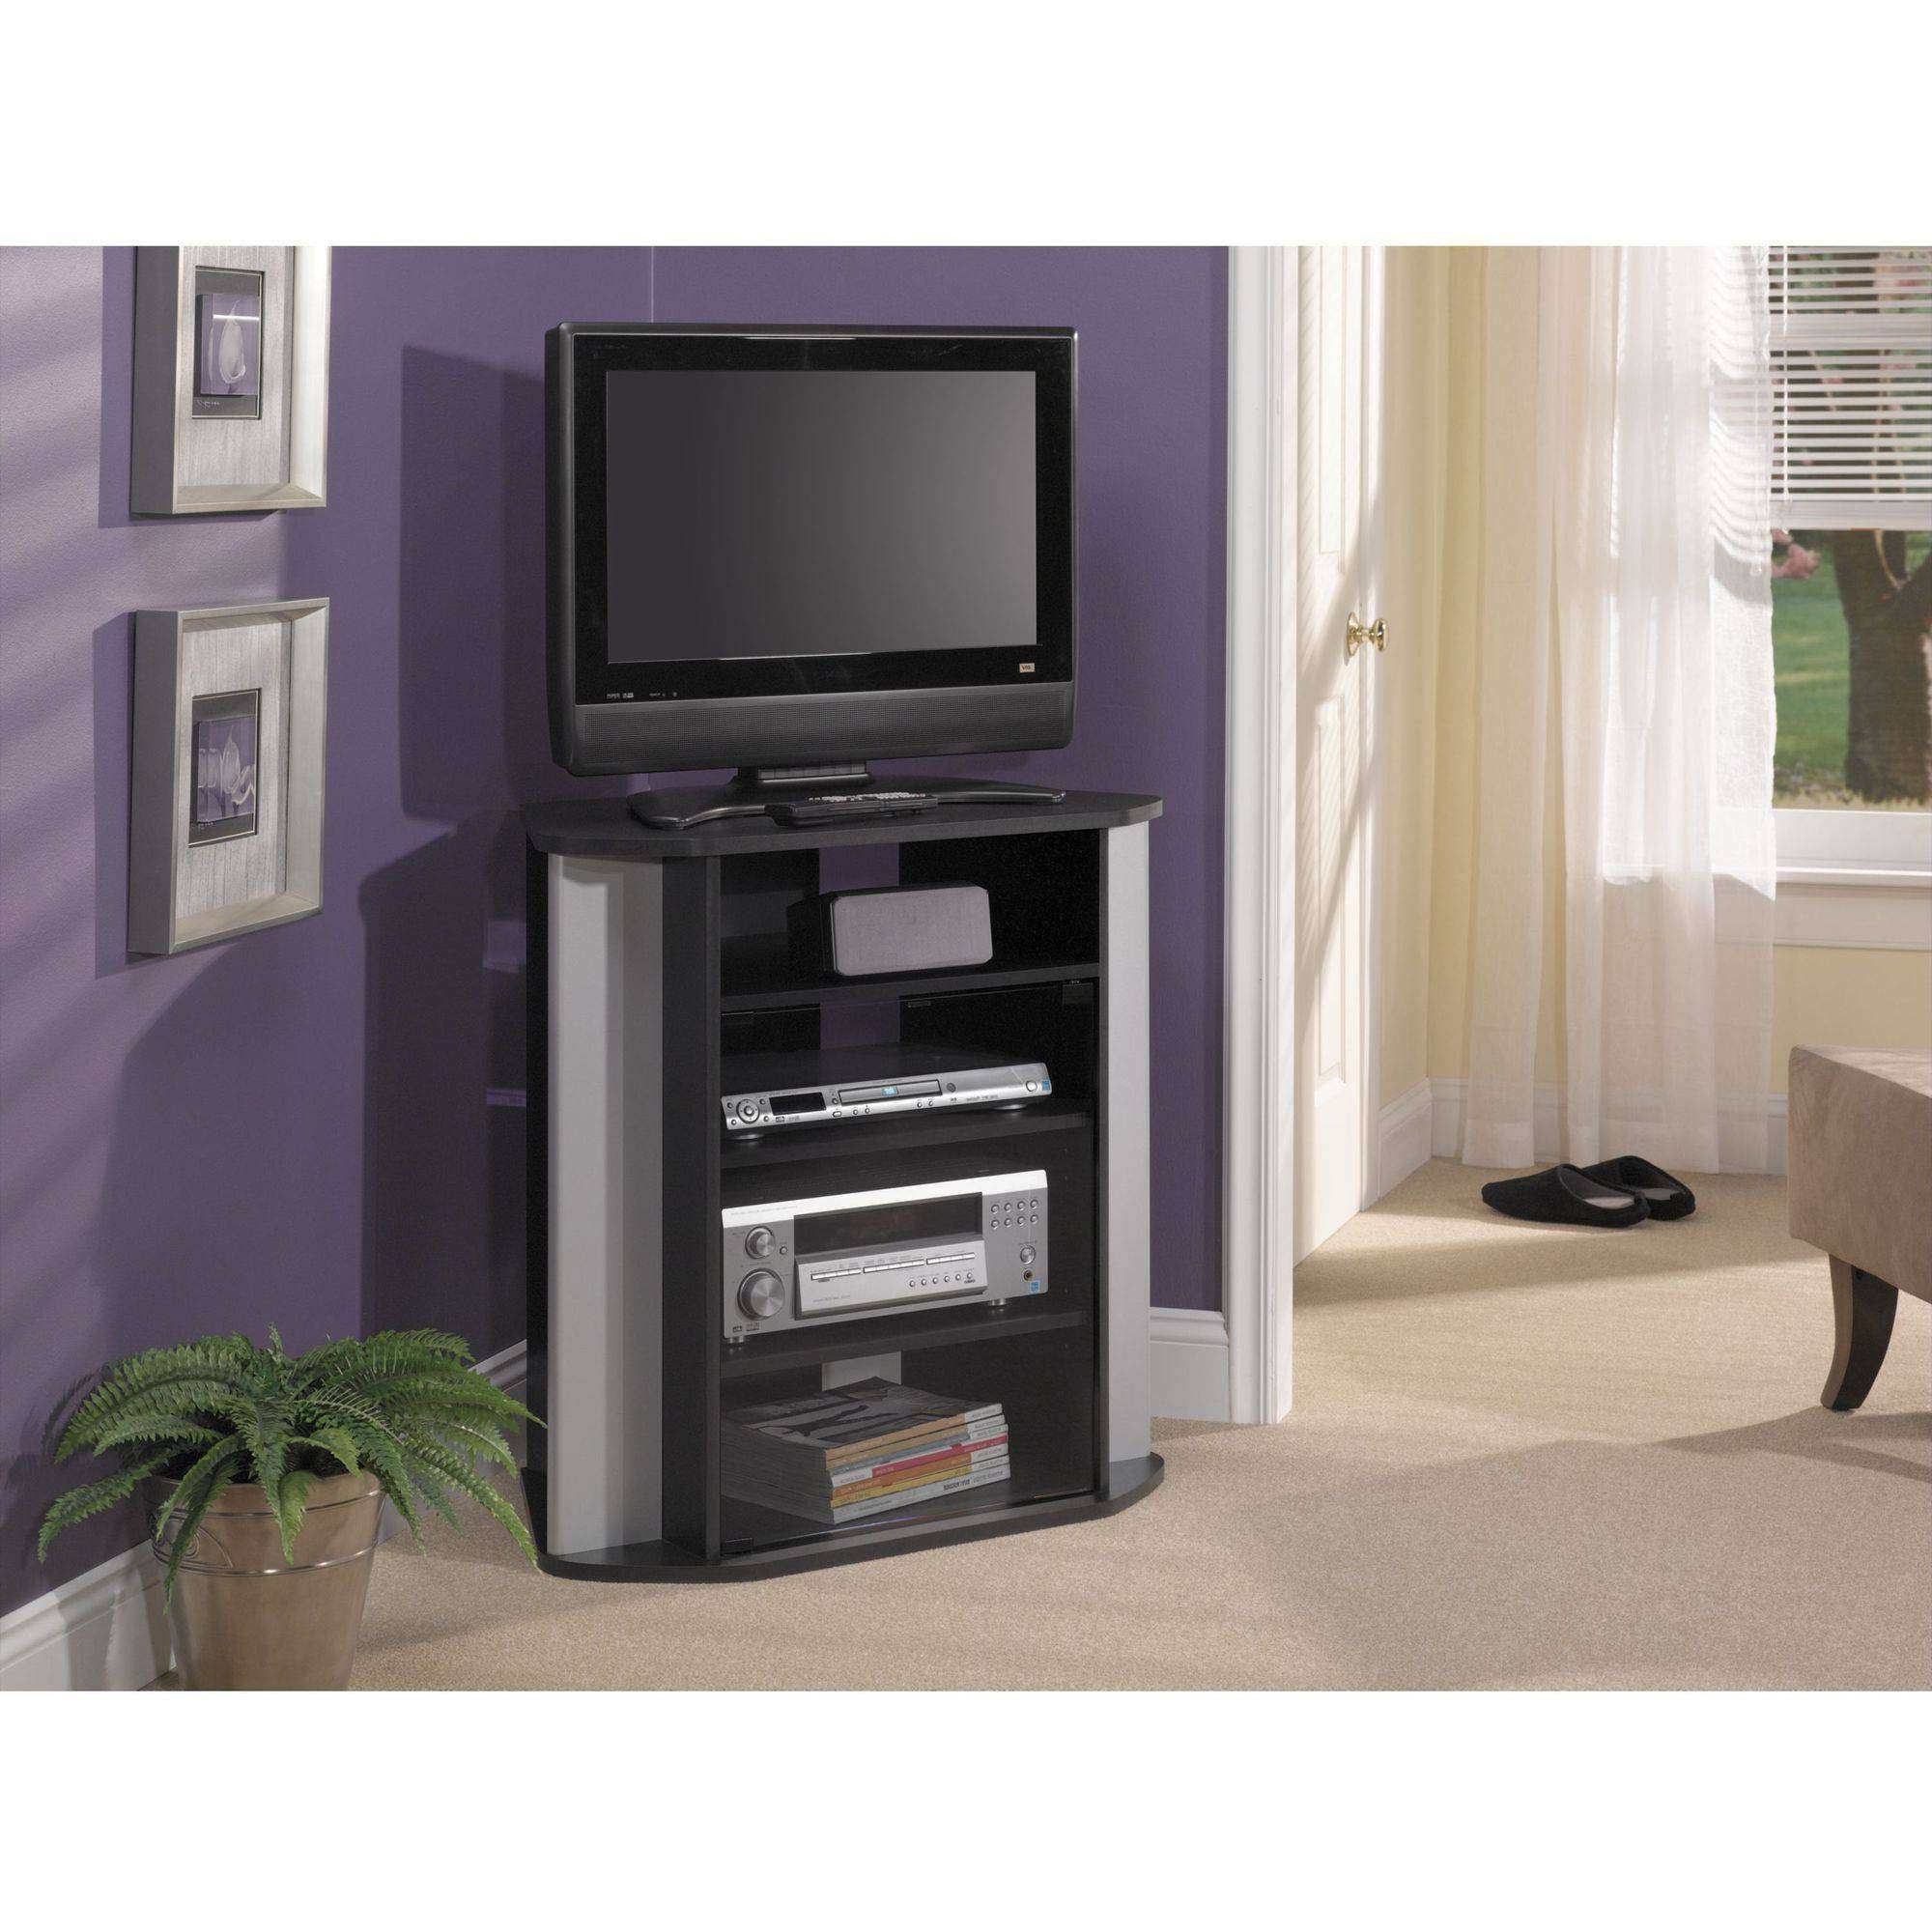 Bush Visions Black Tall Corner Tv Stand, For Tvs Up To 37 Inside Black Corner Tv Cabinets With Glass Doors (View 4 of 20)